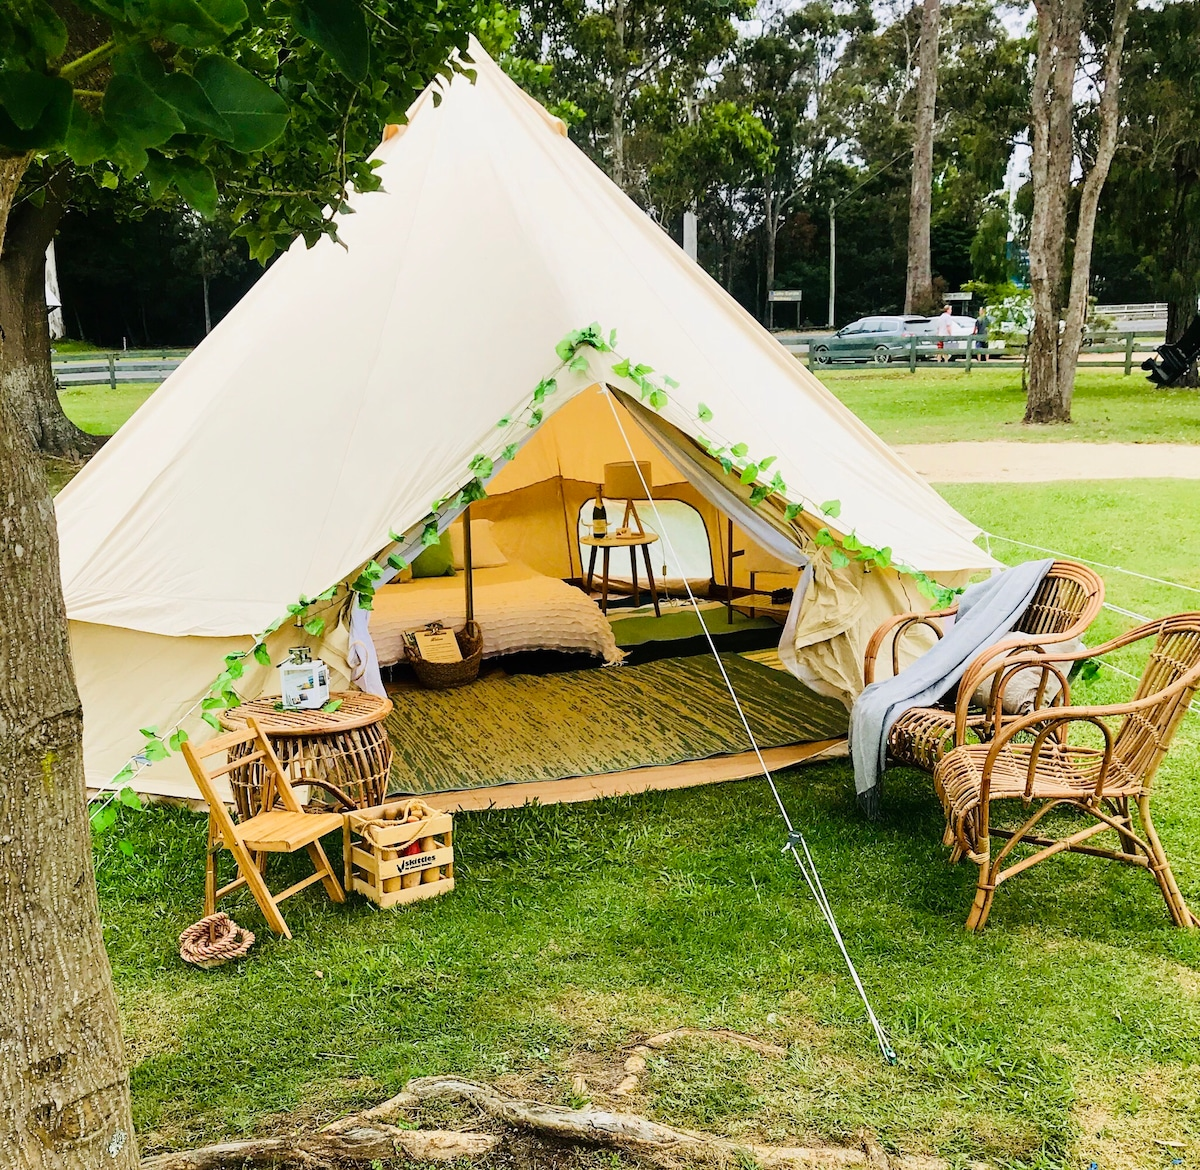 South Coast Luxury C&ing 5 Star Belle tent hire - Tents for Rent in Merimbula New South Wales Australia & South Coast Luxury Camping 5 Star Belle tent hire - Tents for Rent ...